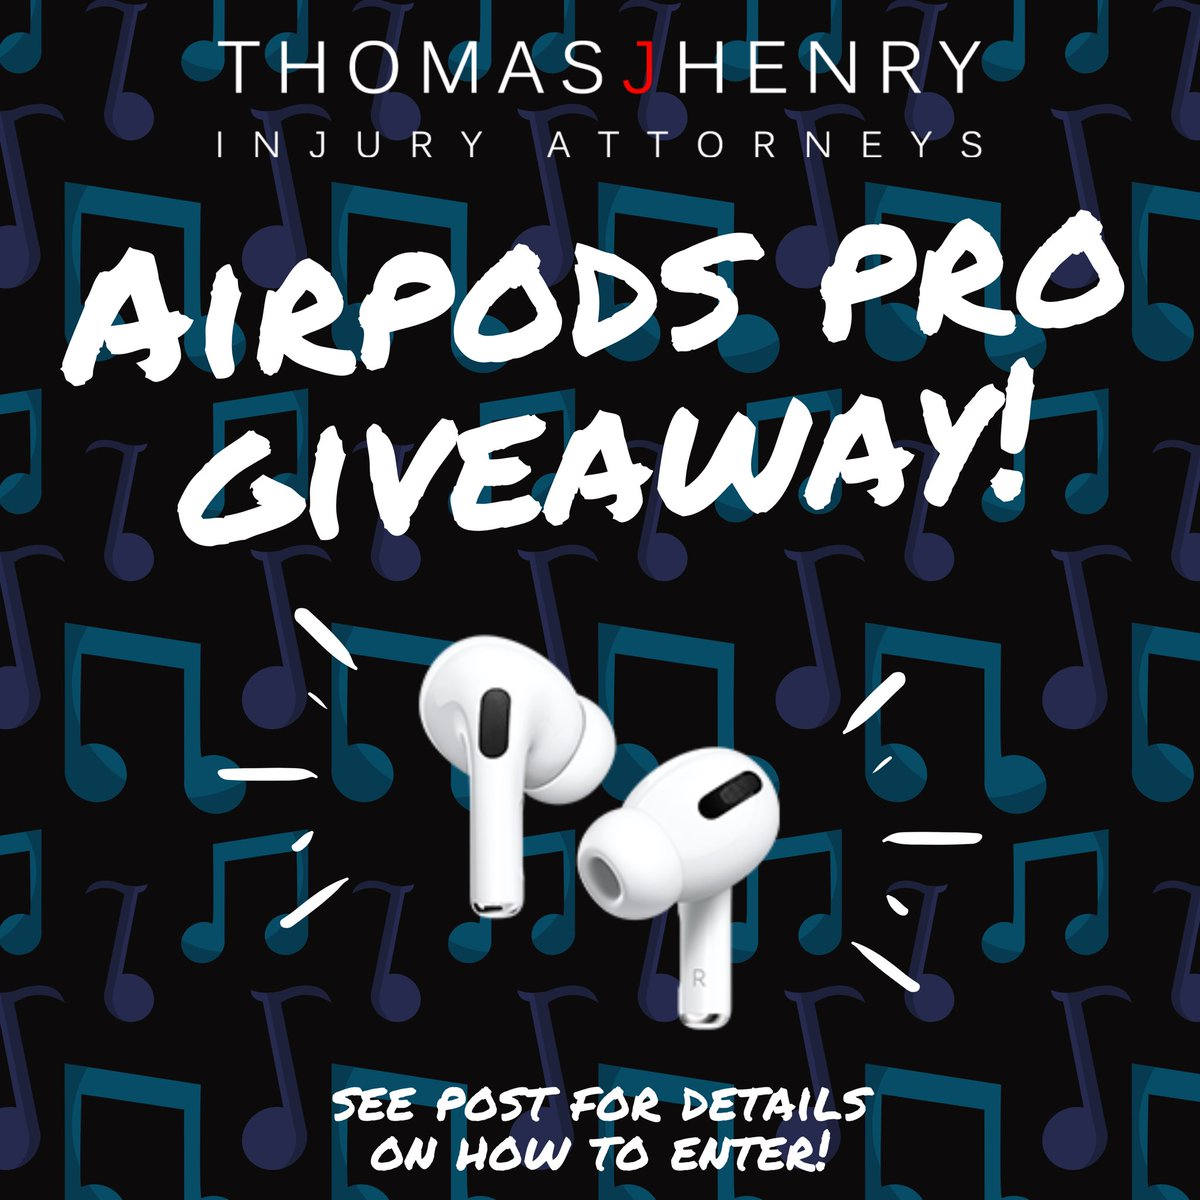 AIRPODS PRO GIVEAWAY!   We hope everybody had a great long weekend! We're excited to be giving away the Airpods Pro, with Active Noise Cancellation for immersive sound. <br>http://pic.twitter.com/T3RQy8qo4Q